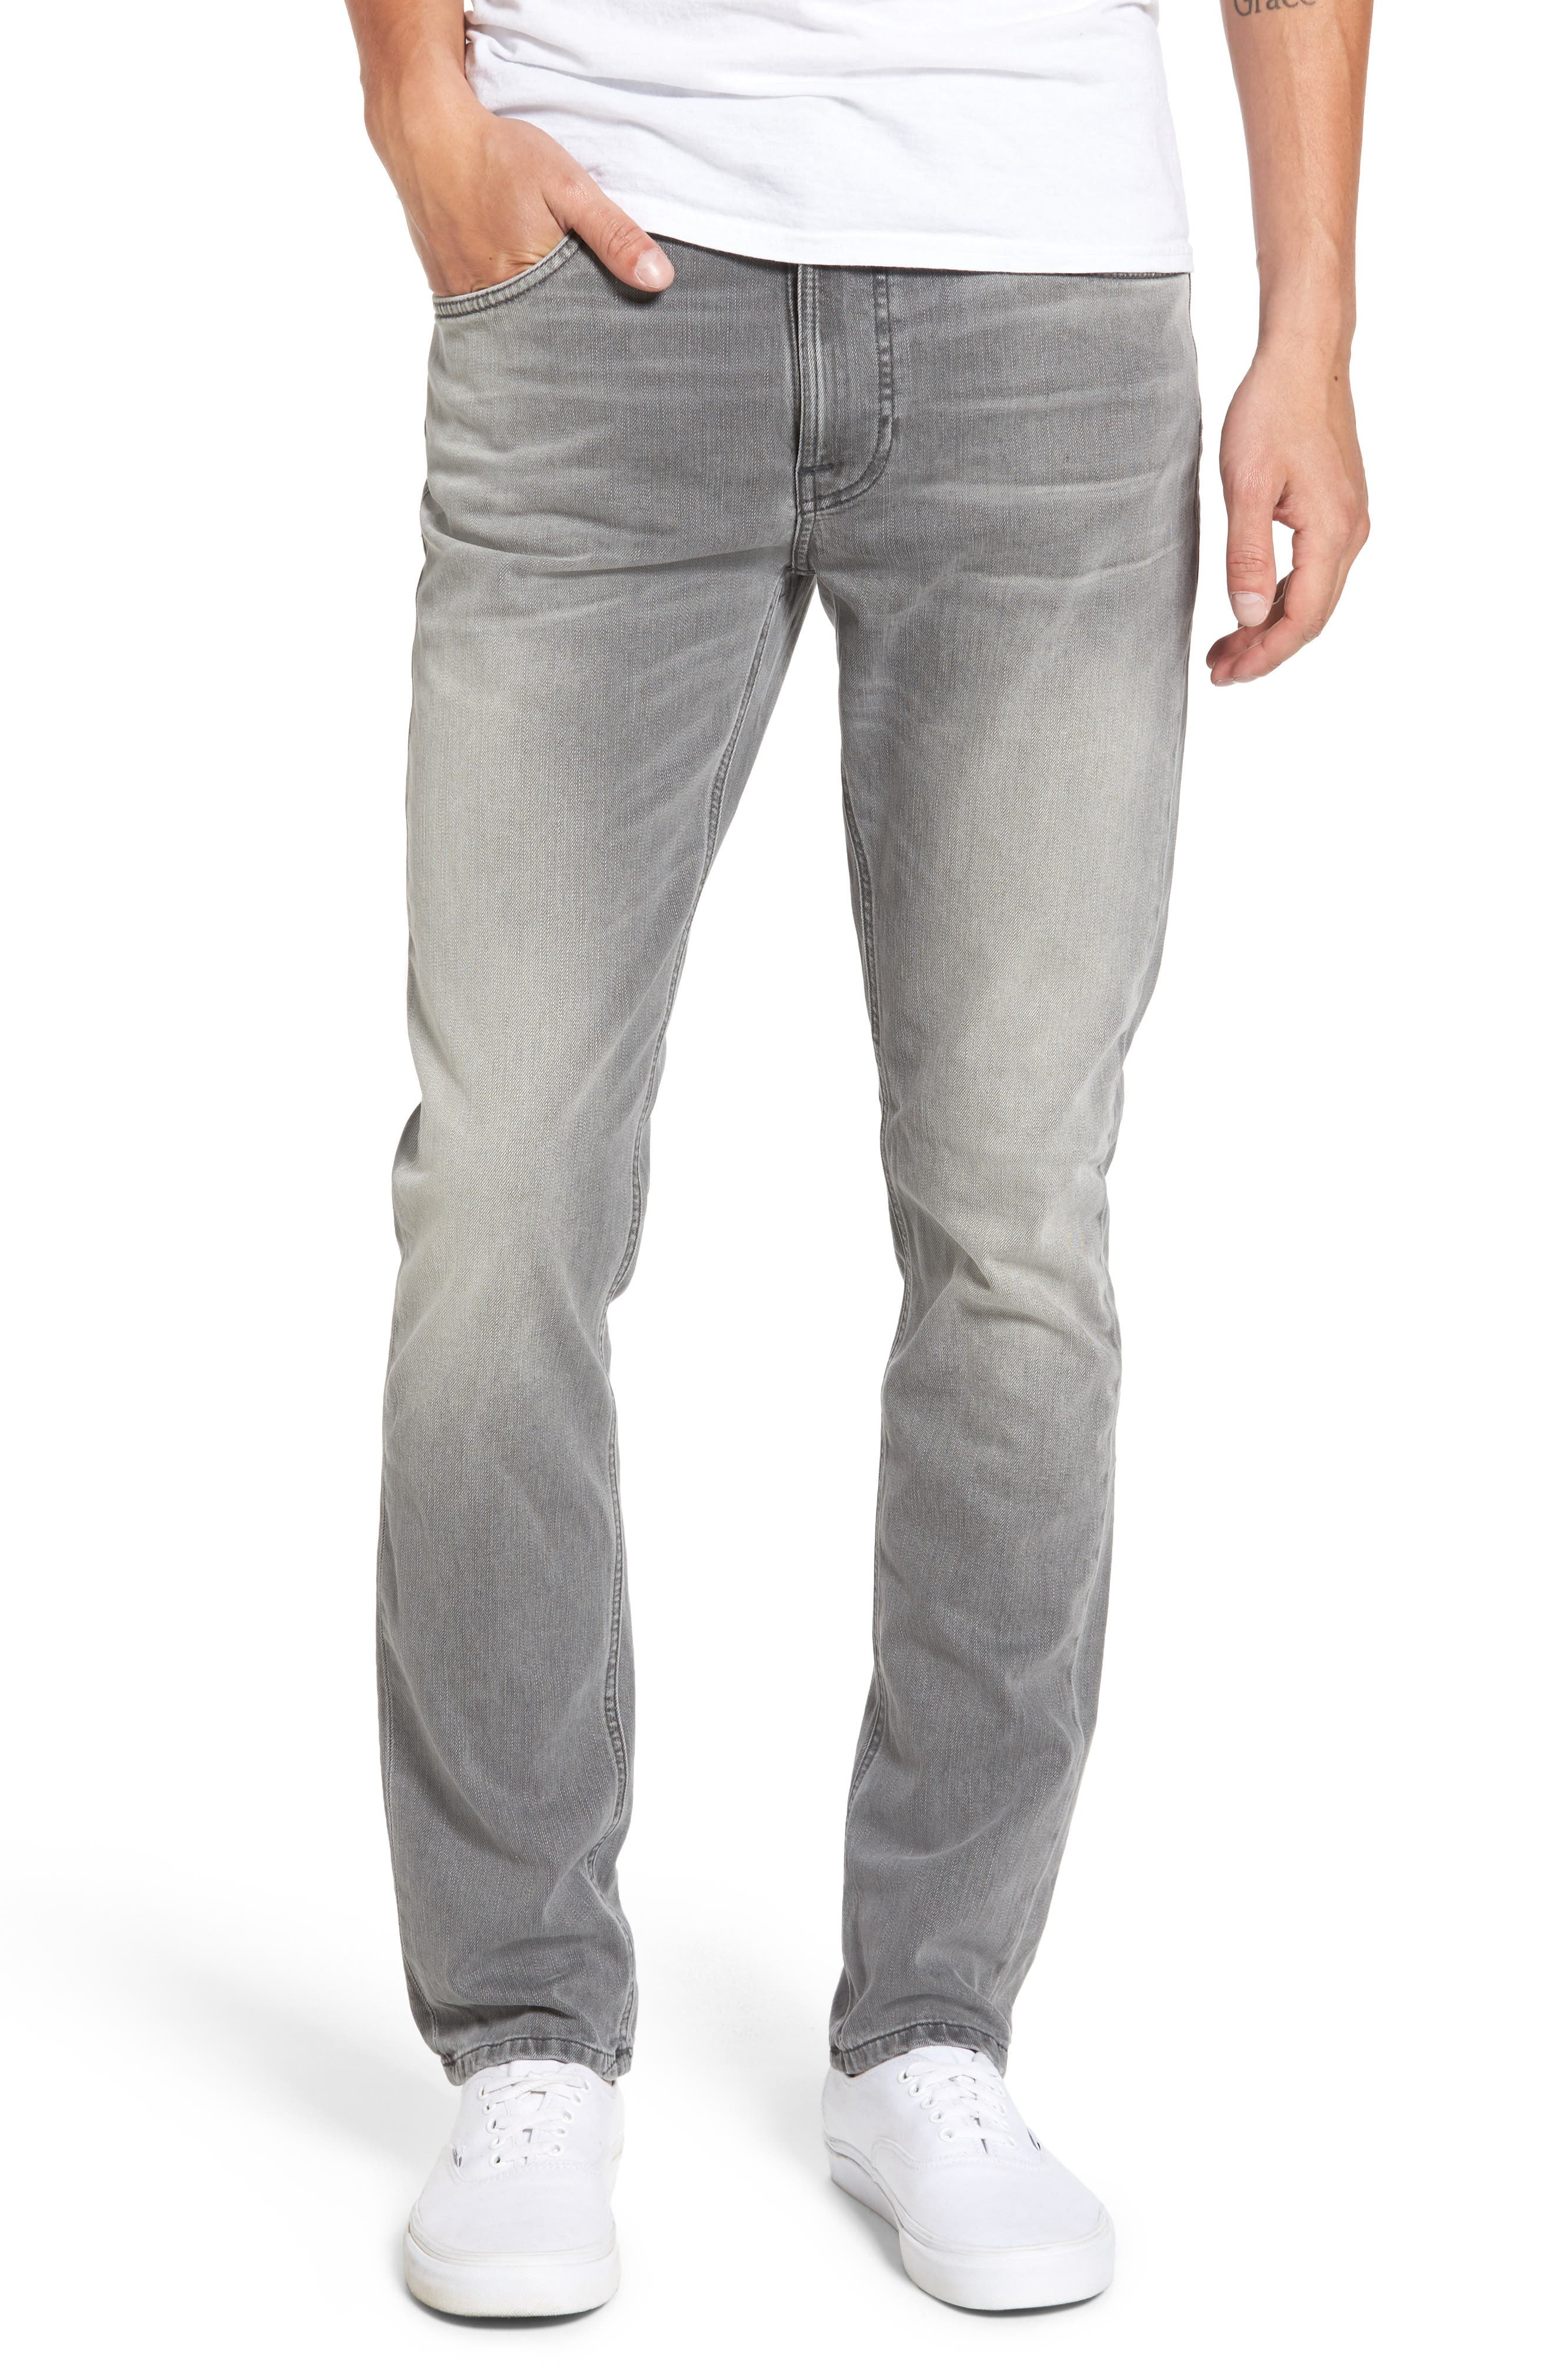 Lean Dean Slouchy Skinny Fit Jeans,                         Main,                         color, Grey Ace